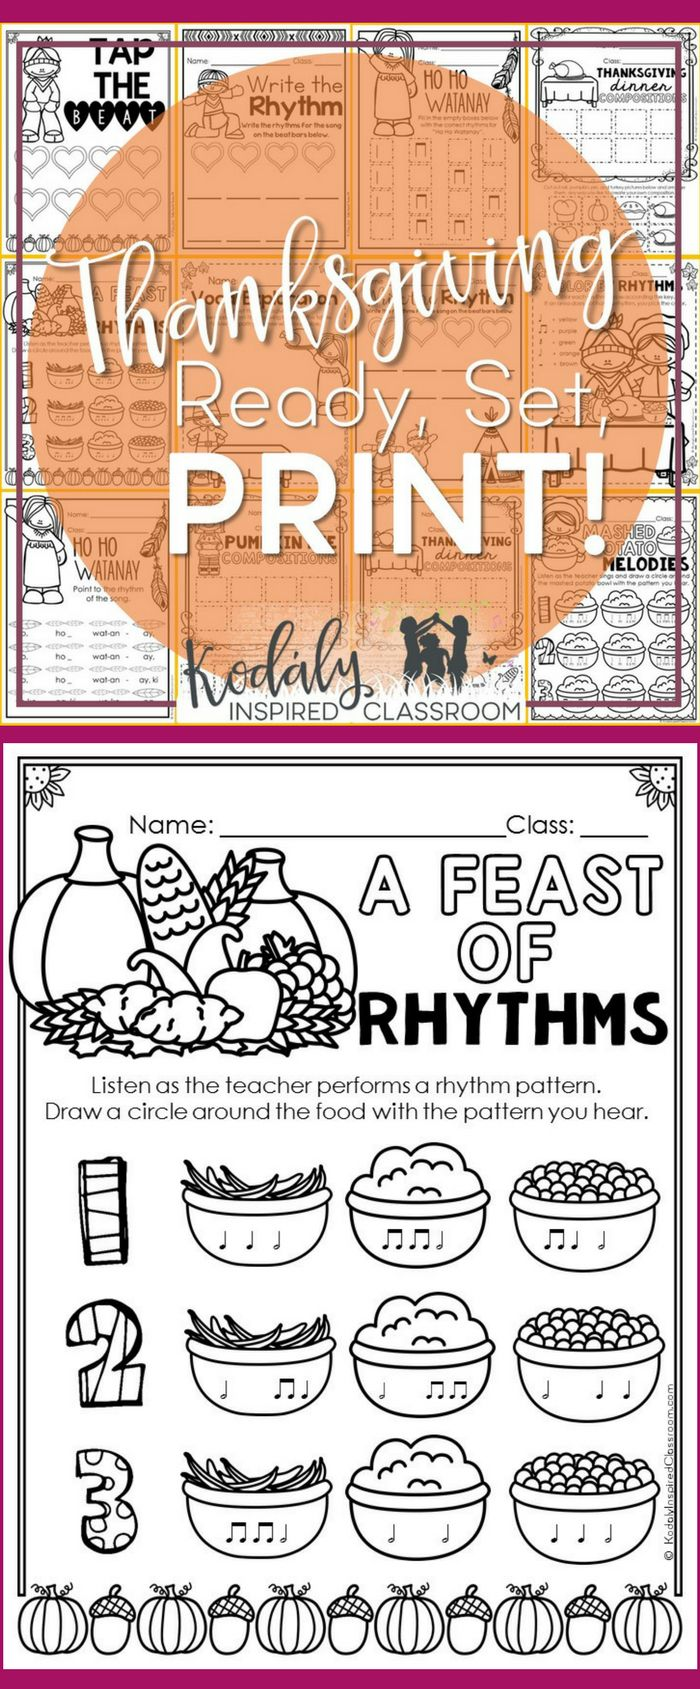 Worksheets General Music Worksheets music worksheets for thanksgiving ready set print in 2018 elementary and november this of includes pages steady beat rhythm pract